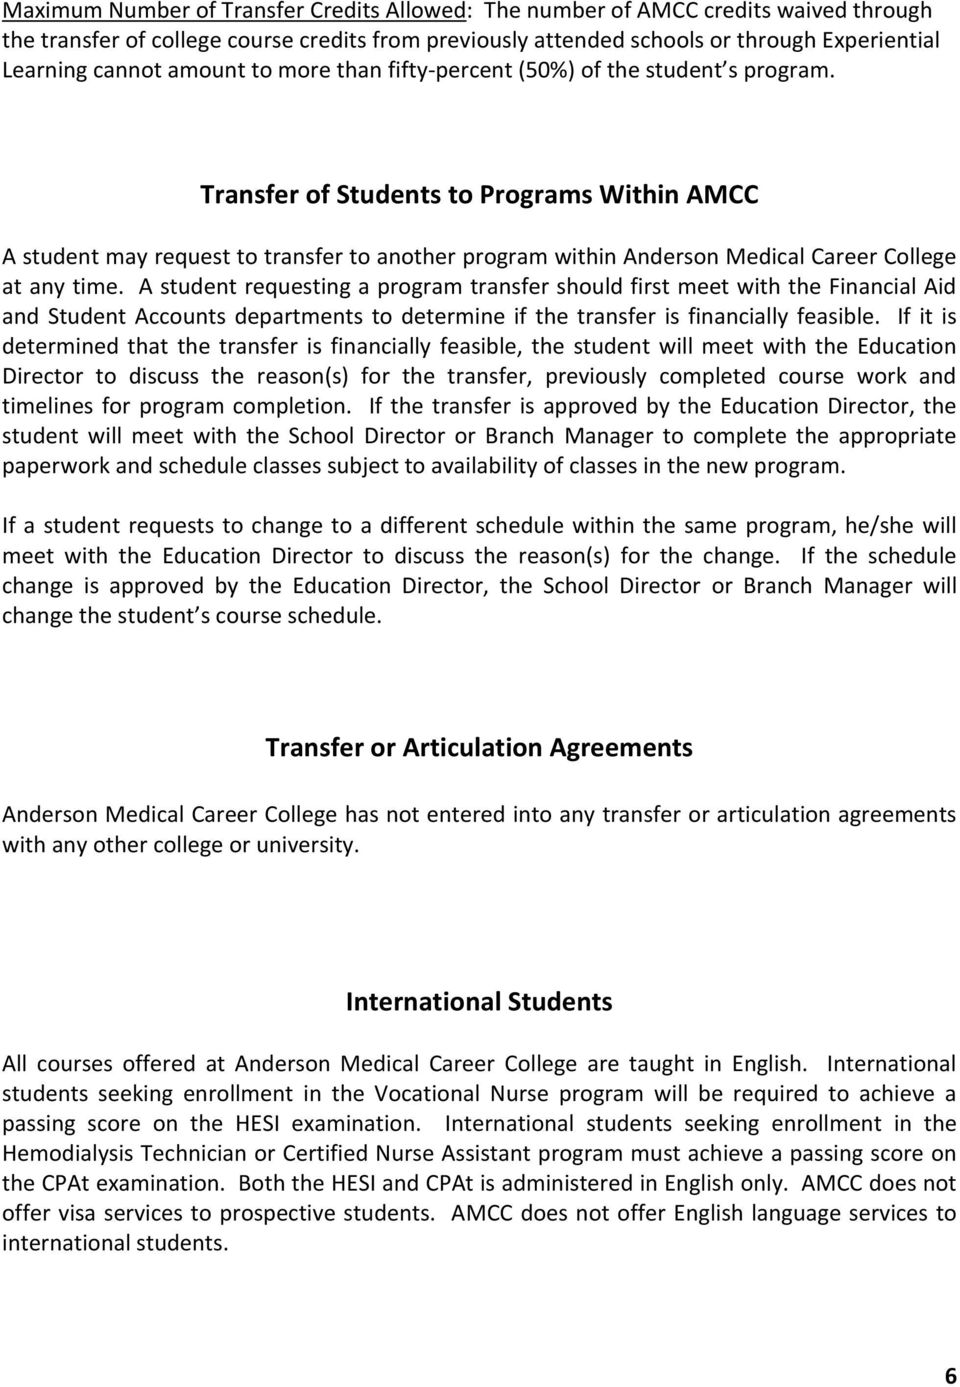 Transfer of Students to Programs Within AMCC A student may request to transfer to another program within Anderson Medical Career College at any time.